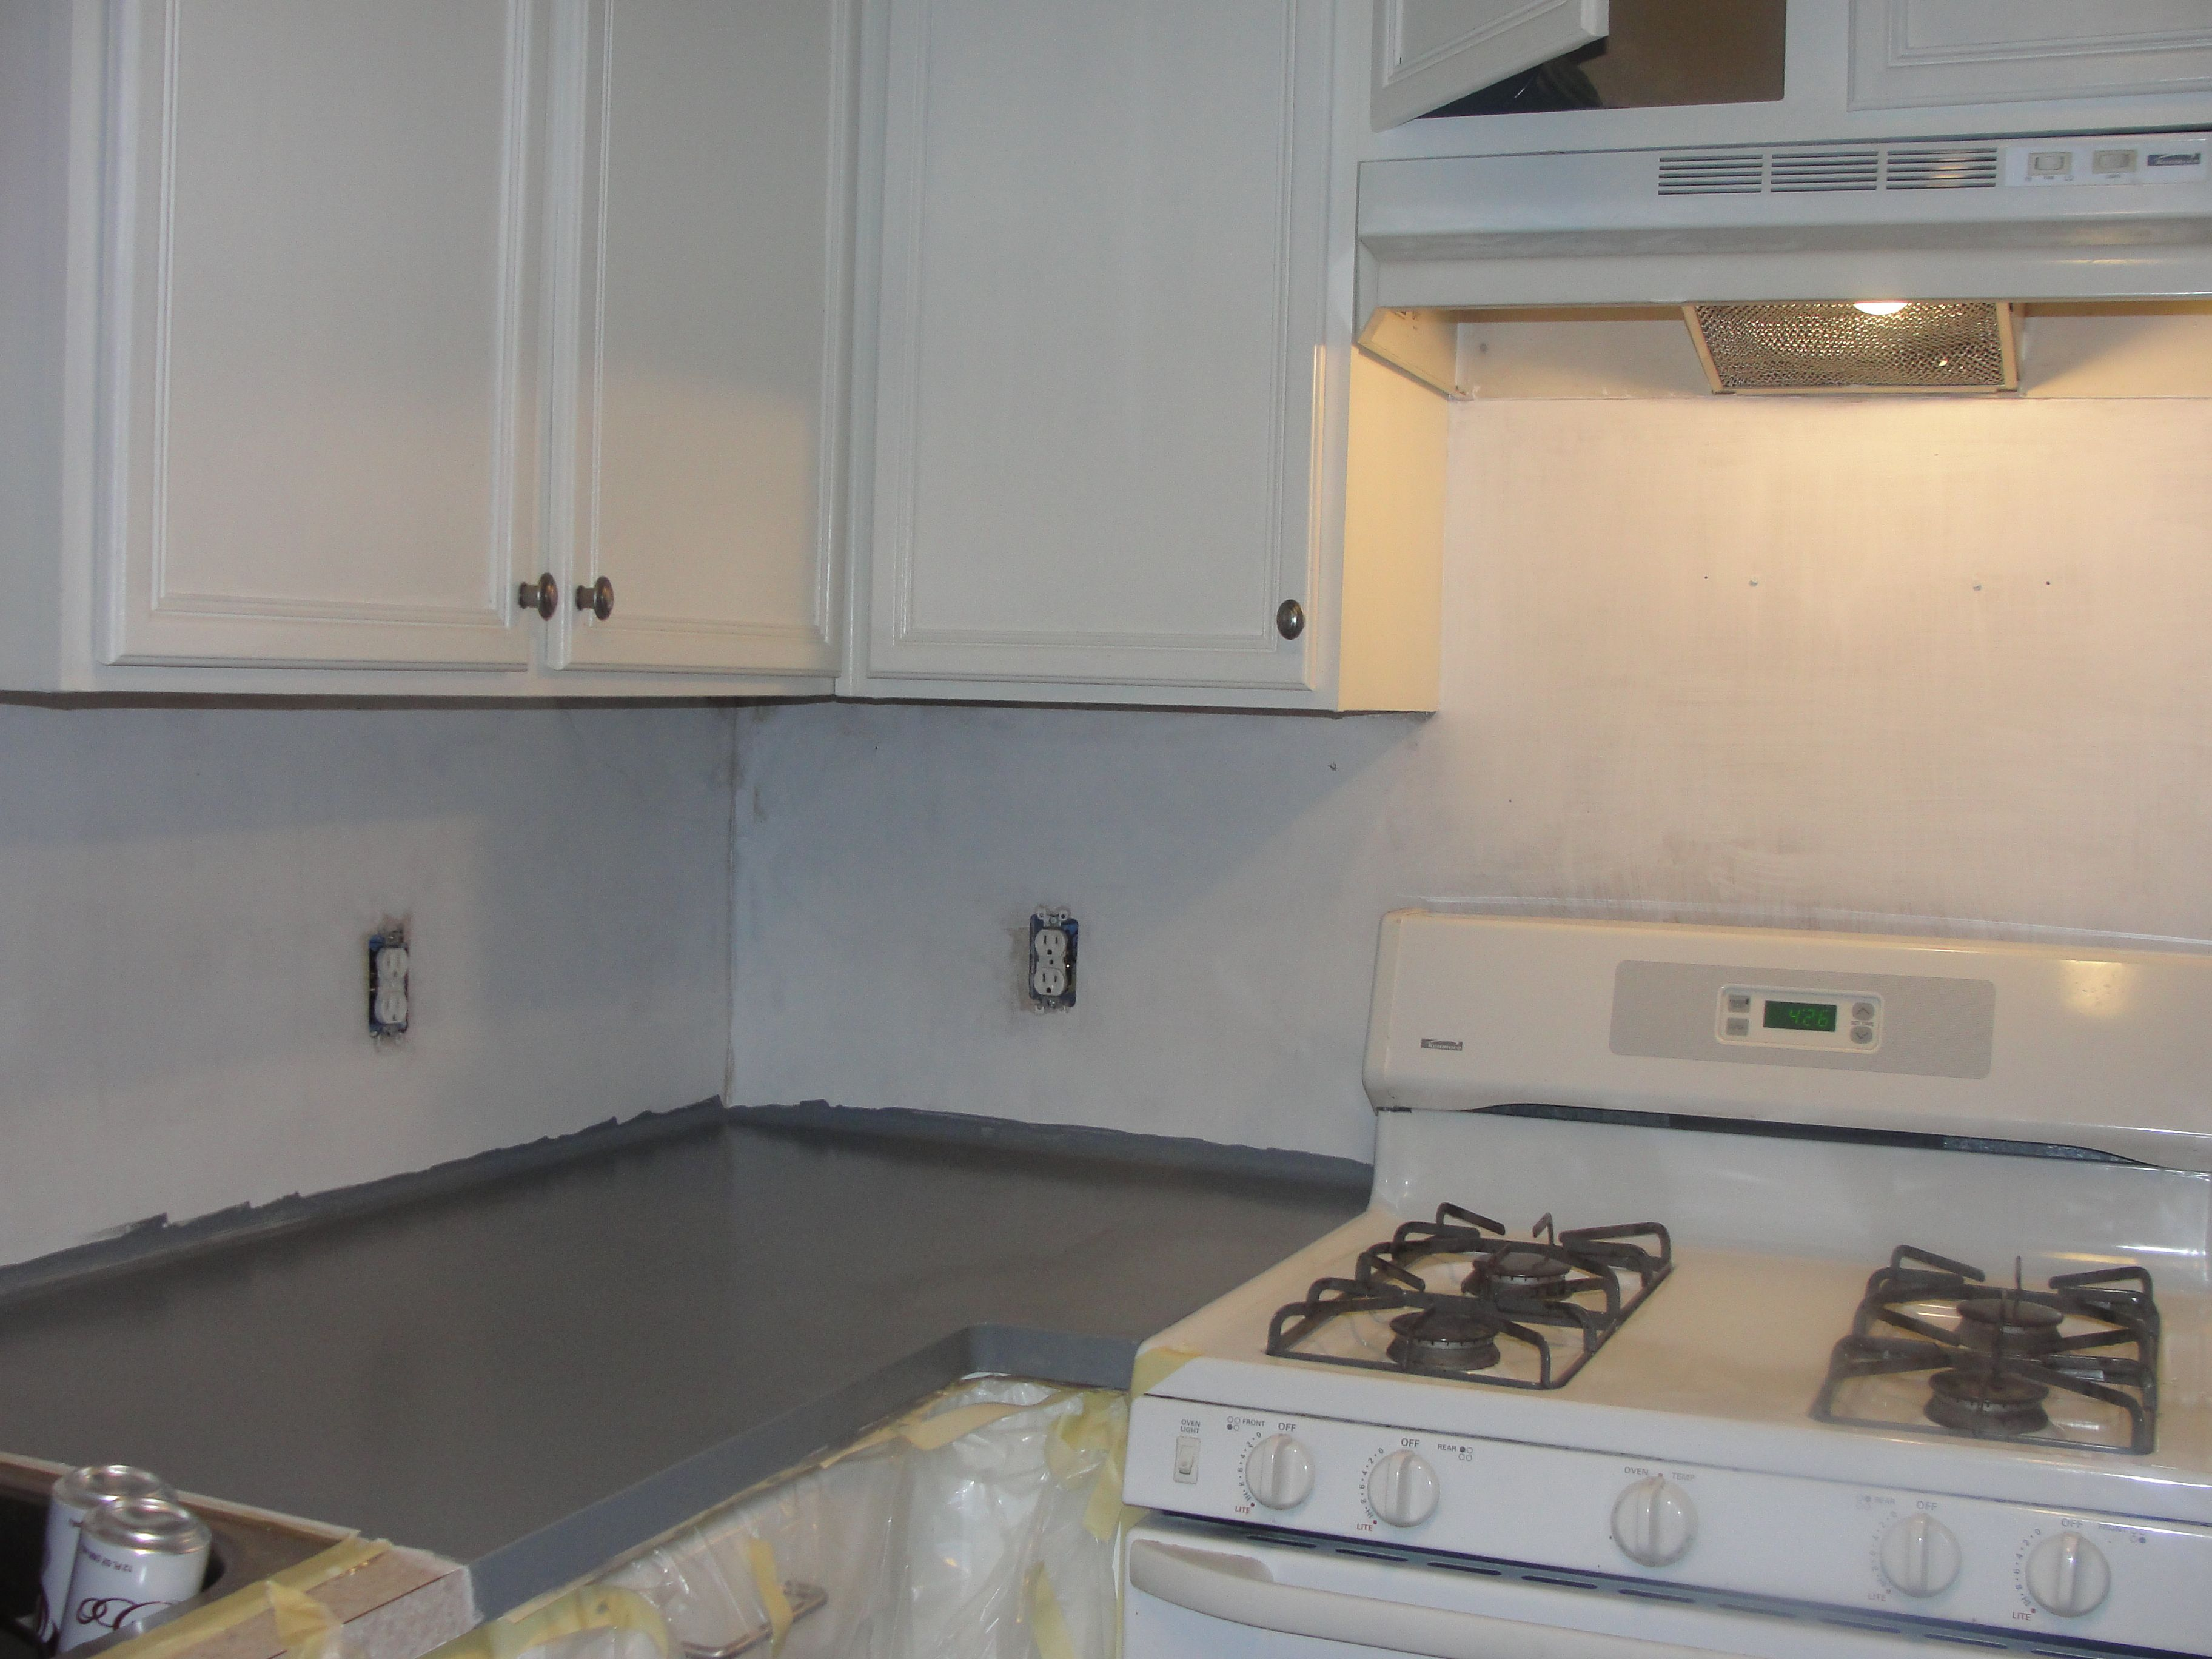 Diy Kitchen Updates In A Budget You Can Paint Laminate Countertops